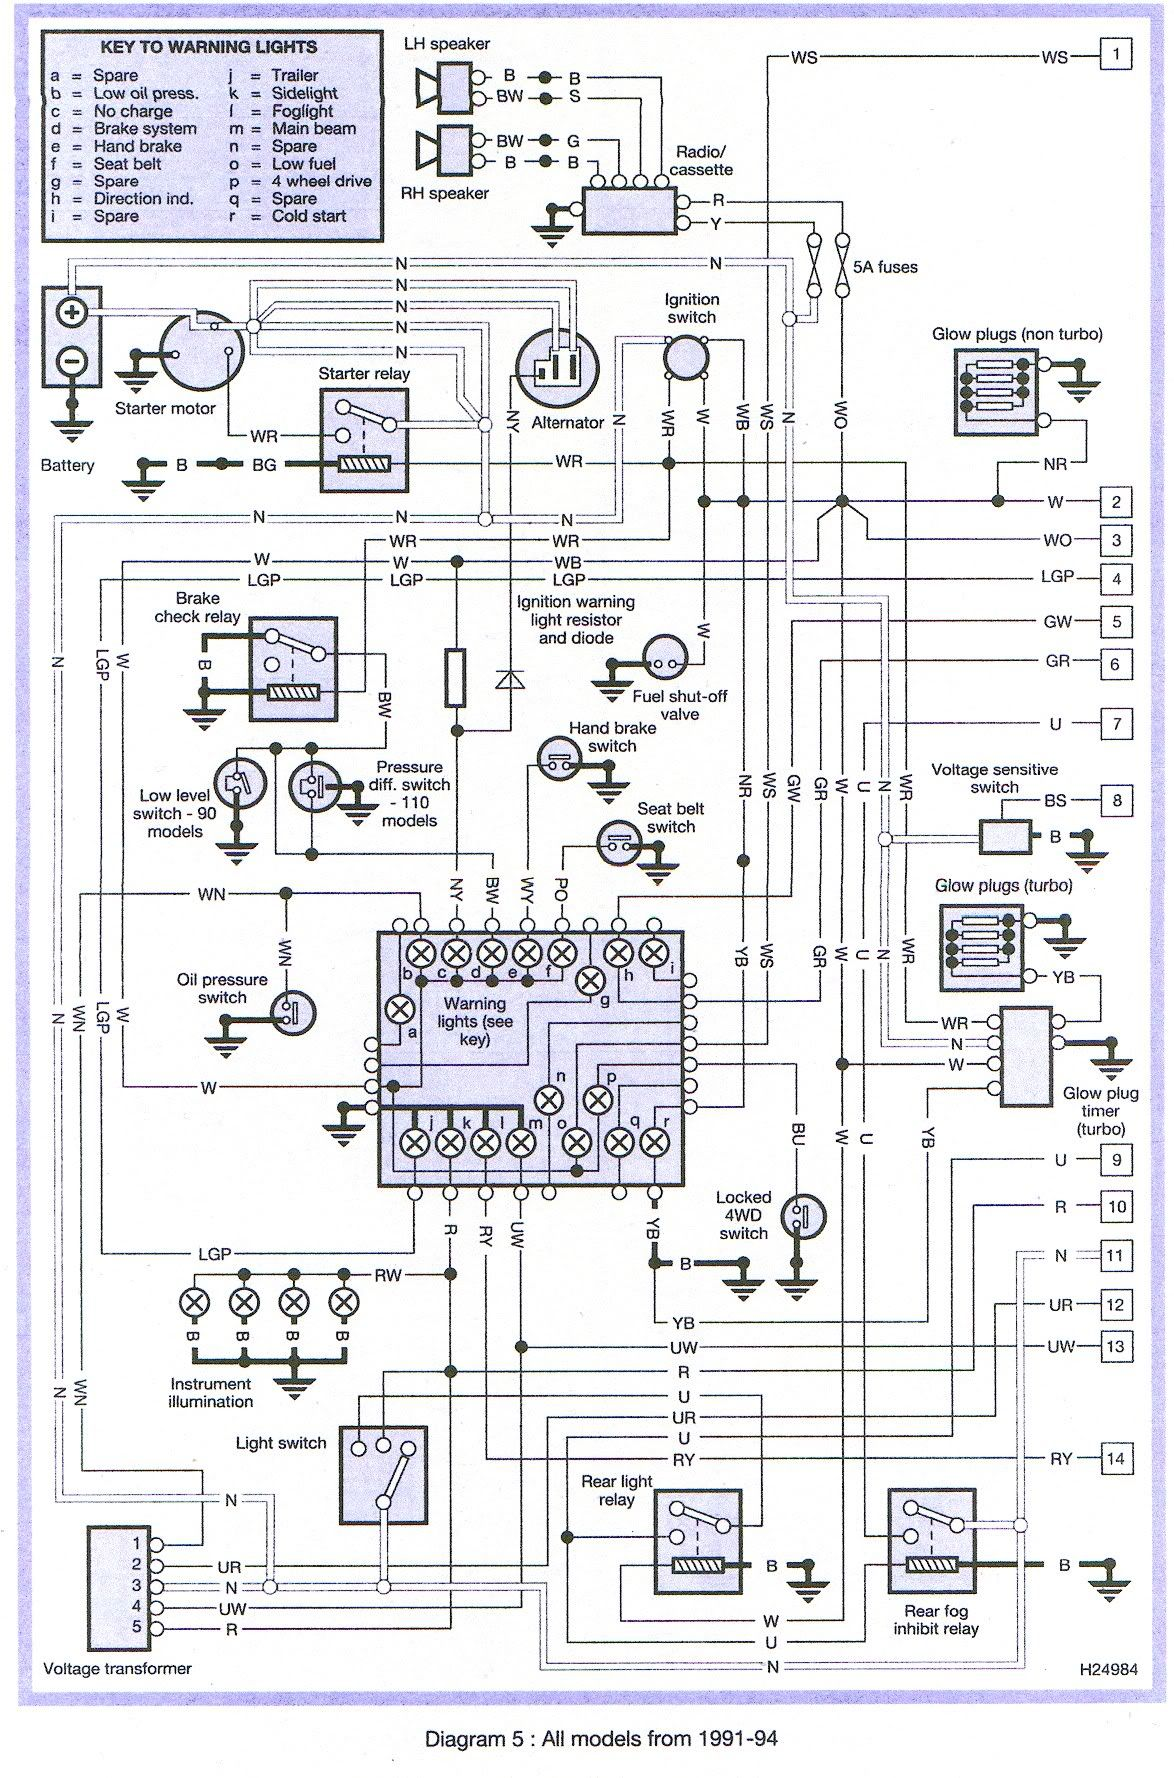 small resolution of 96 range rover engine diagram share circuit diagrams 96 land rover discovery wiring diagram wiring diagram